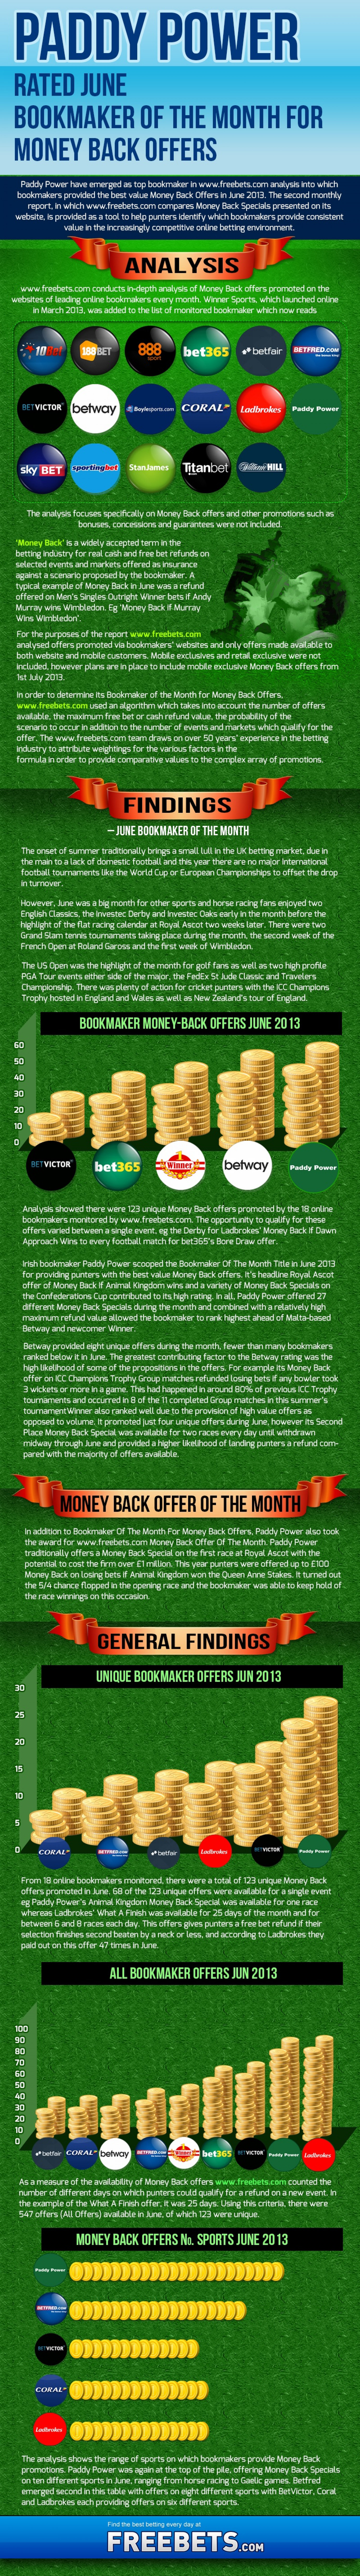 Paddy Power Tops For Moneyback Offers Infographic